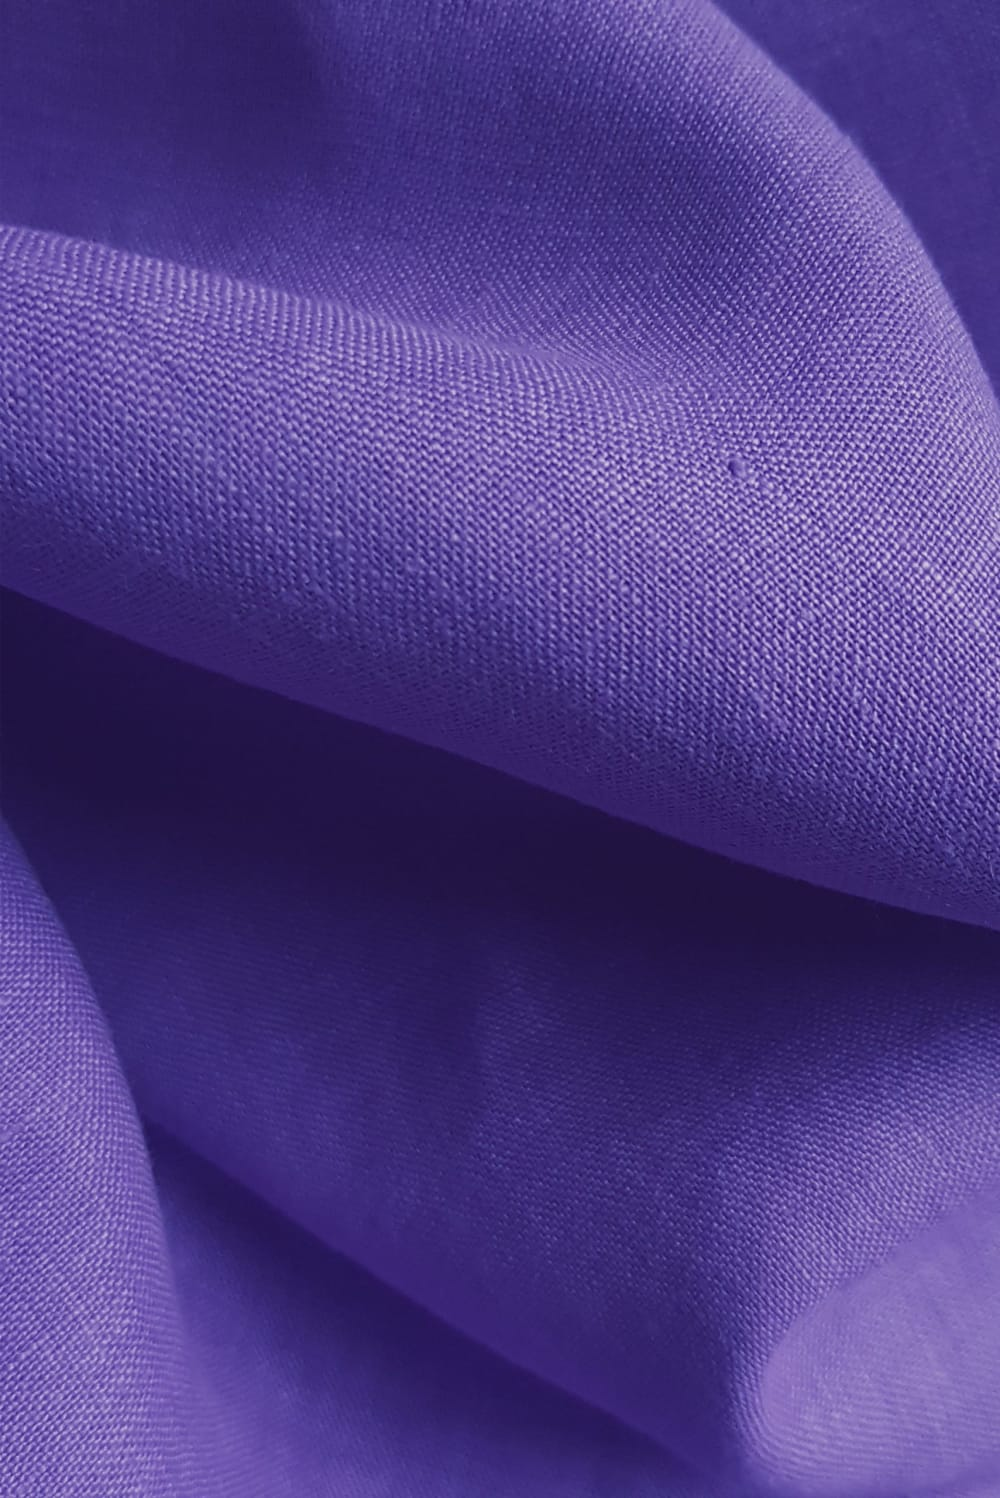 close up of cut couture linen hand dyed with Dylon deep violet